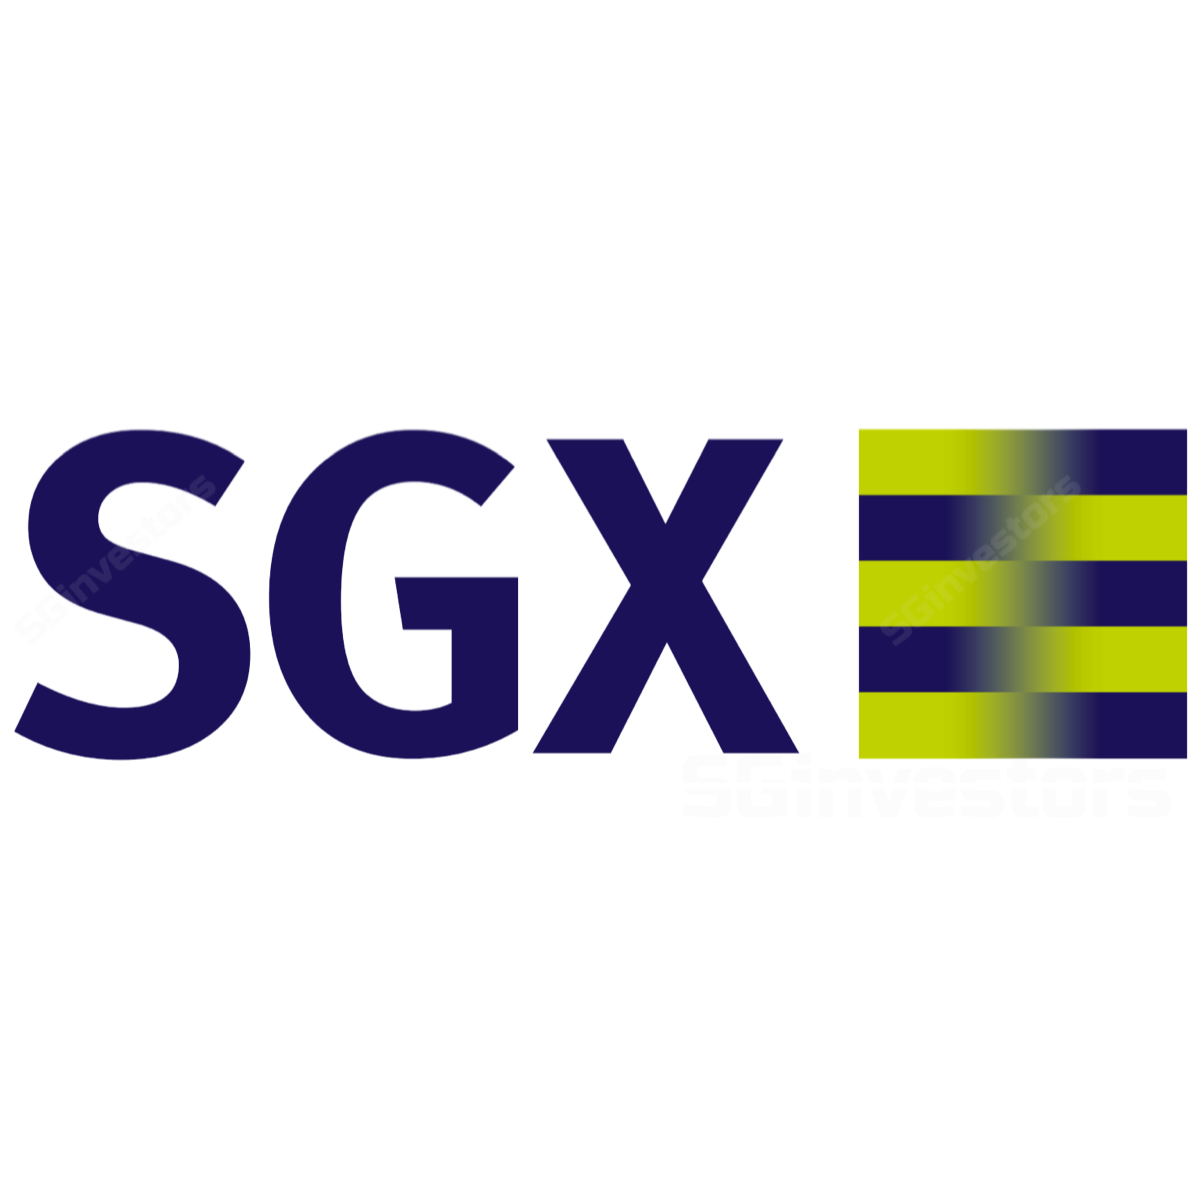 SGX - OCBC Investment 2017-04-21: Derivatives The Main Drag